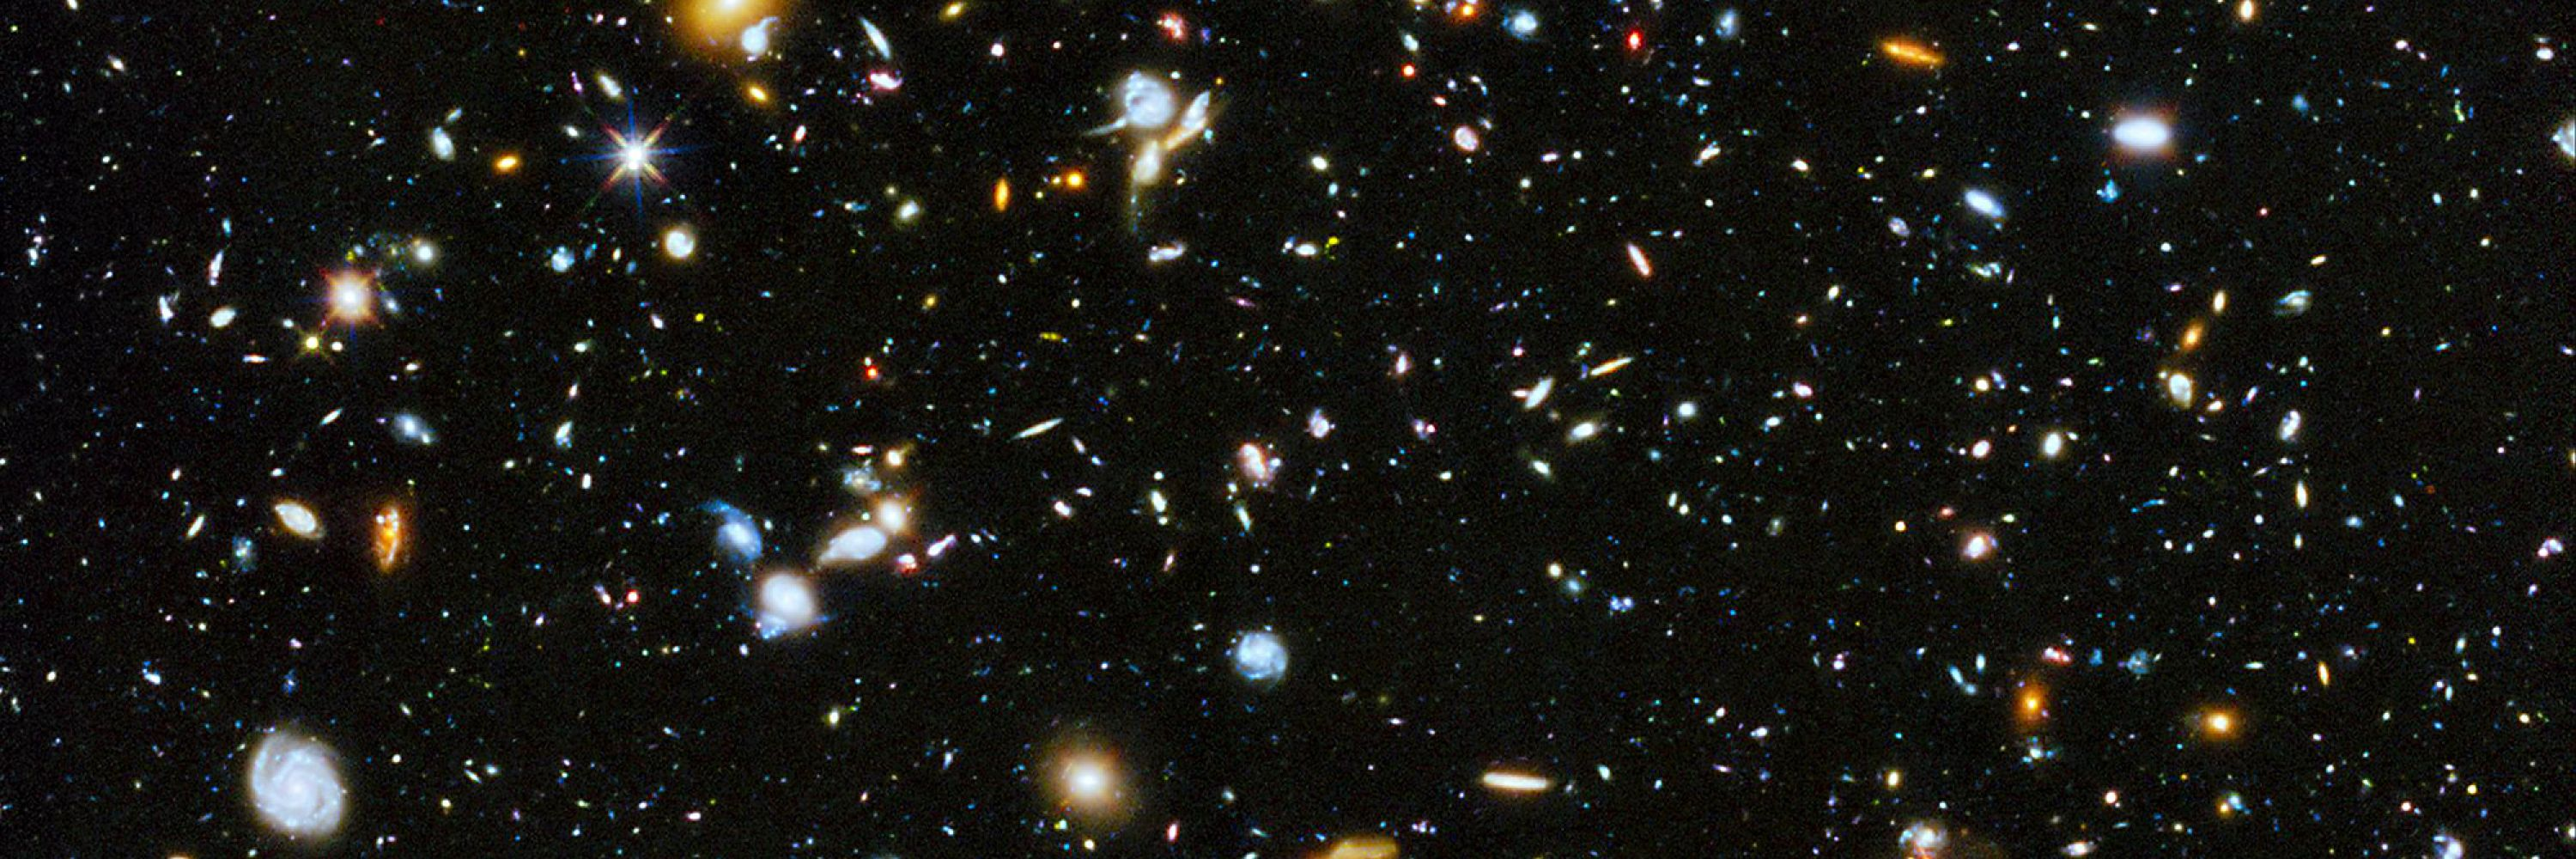 Figuring Forward in an Uncertain Universe